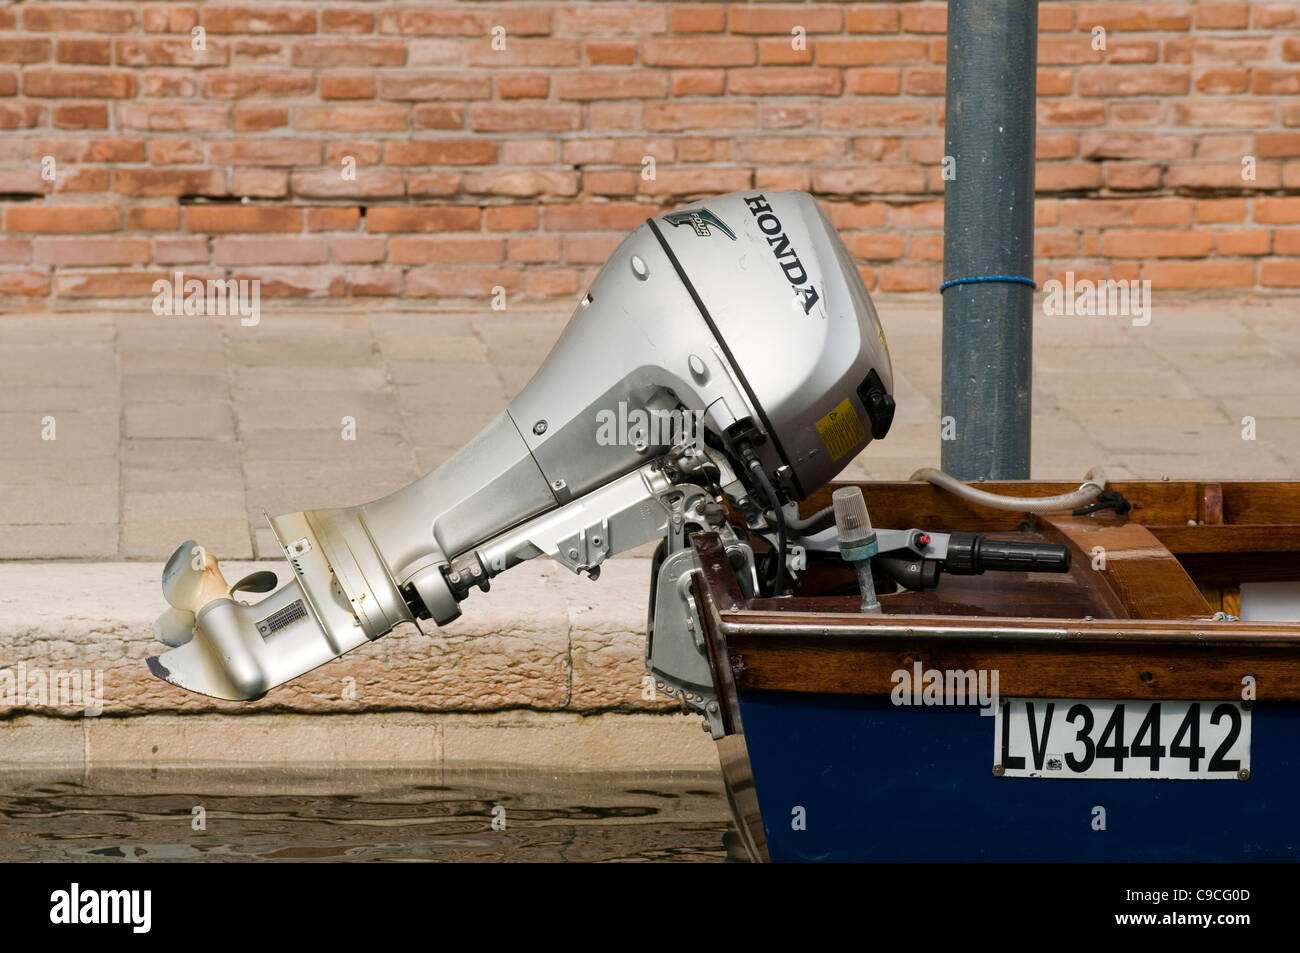 outboard motor engine honda boat engines motors propeller - Stock Image